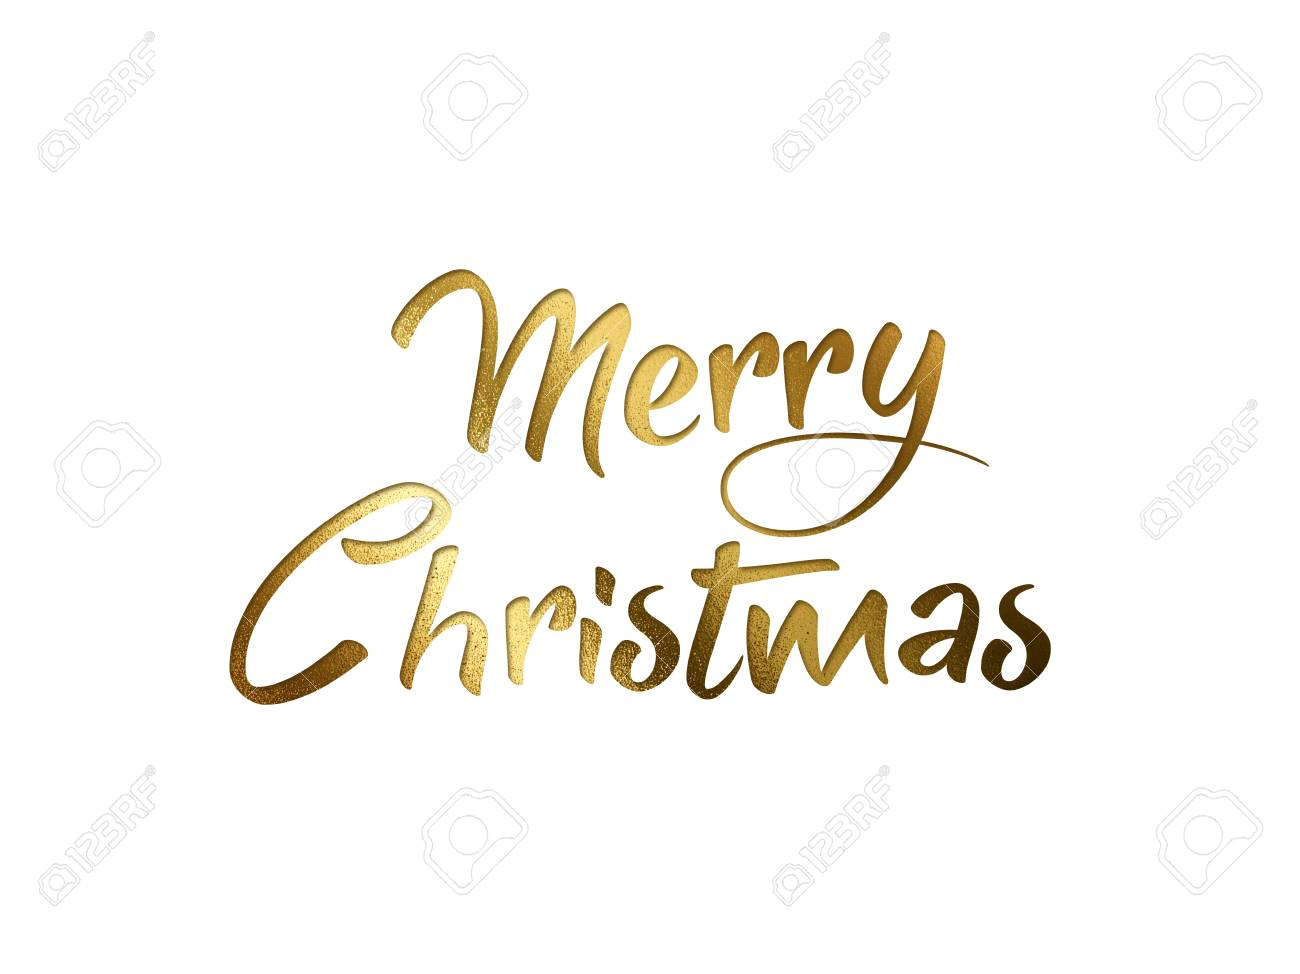 Merry Christmas Writing Images.The Golden Glitter Isolated Hand Writing Word Merry Christmas